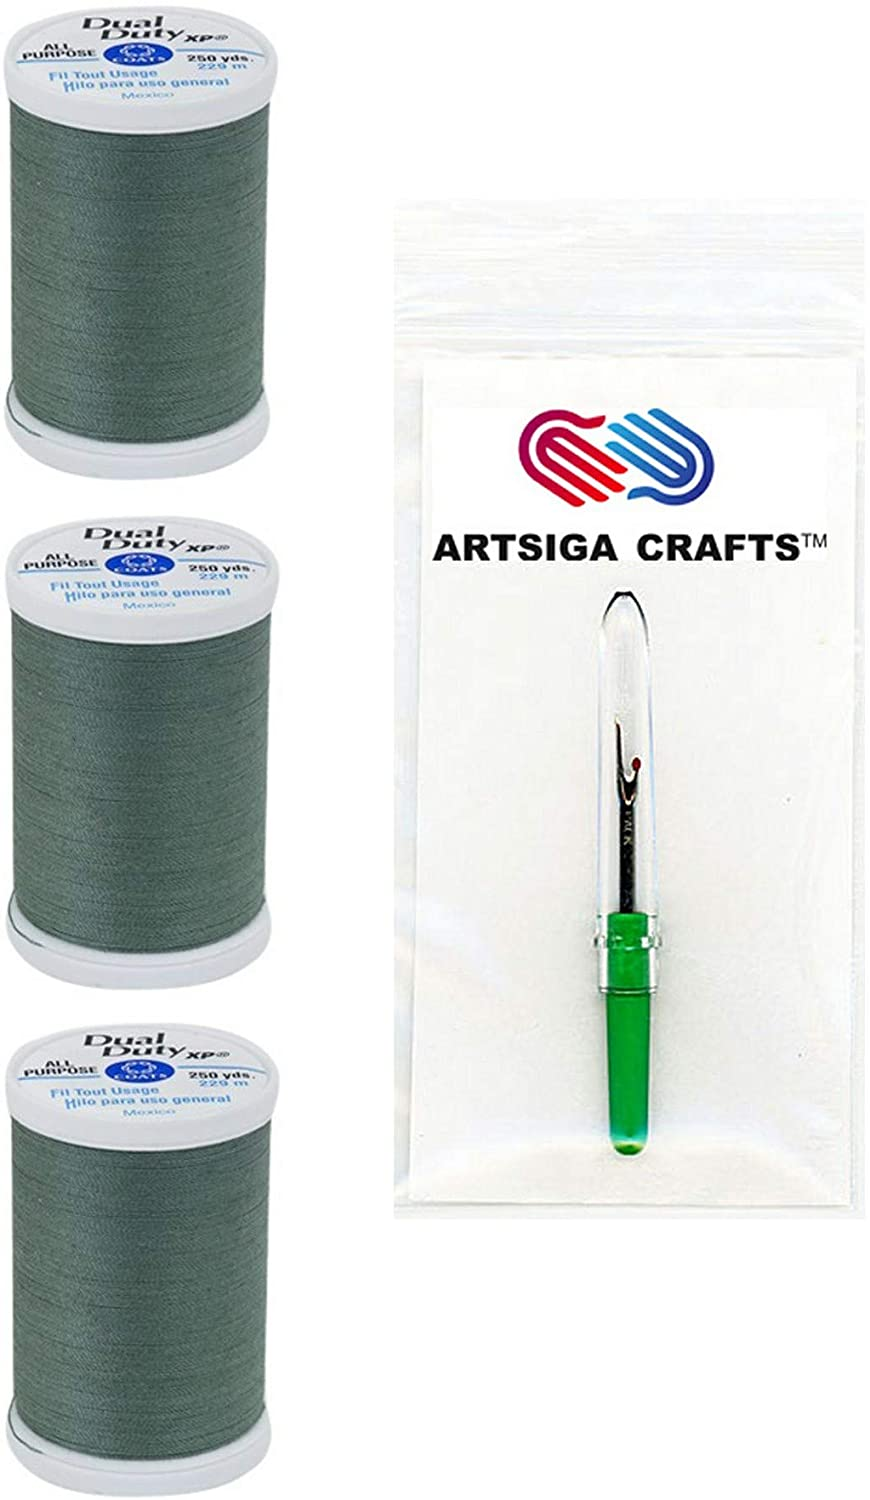 Coats & Clark Sewing Thread Dual Duty XP General Purpose Poly Thread 250 Yards (3-Pack) Sage Bundle with 1 Artsiga Crafts Seam Ripper S910-6070-3P